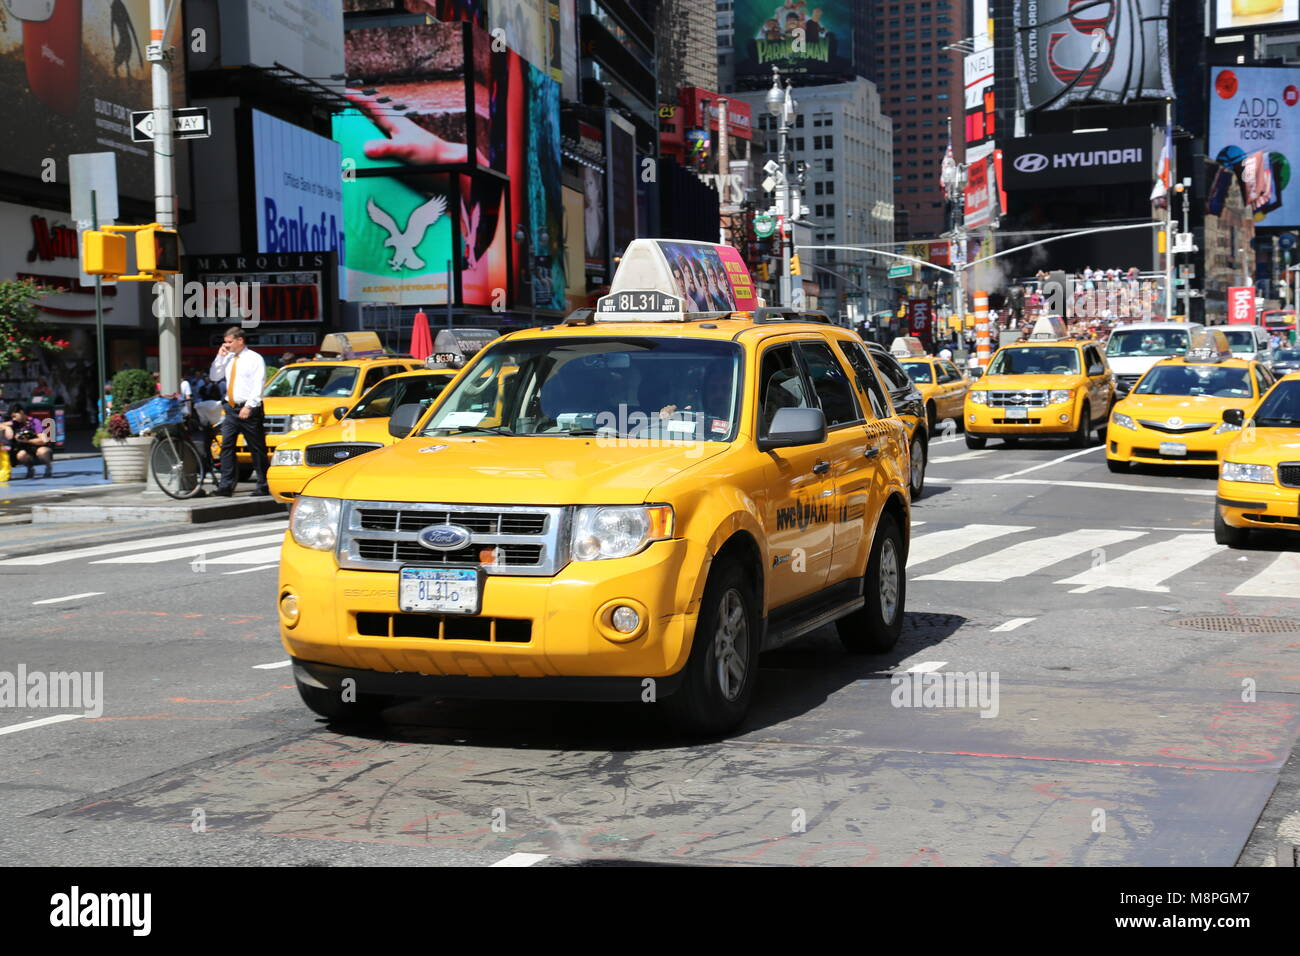 Yellow Taxi cars in Times Square. NYC, New York - Stock Image